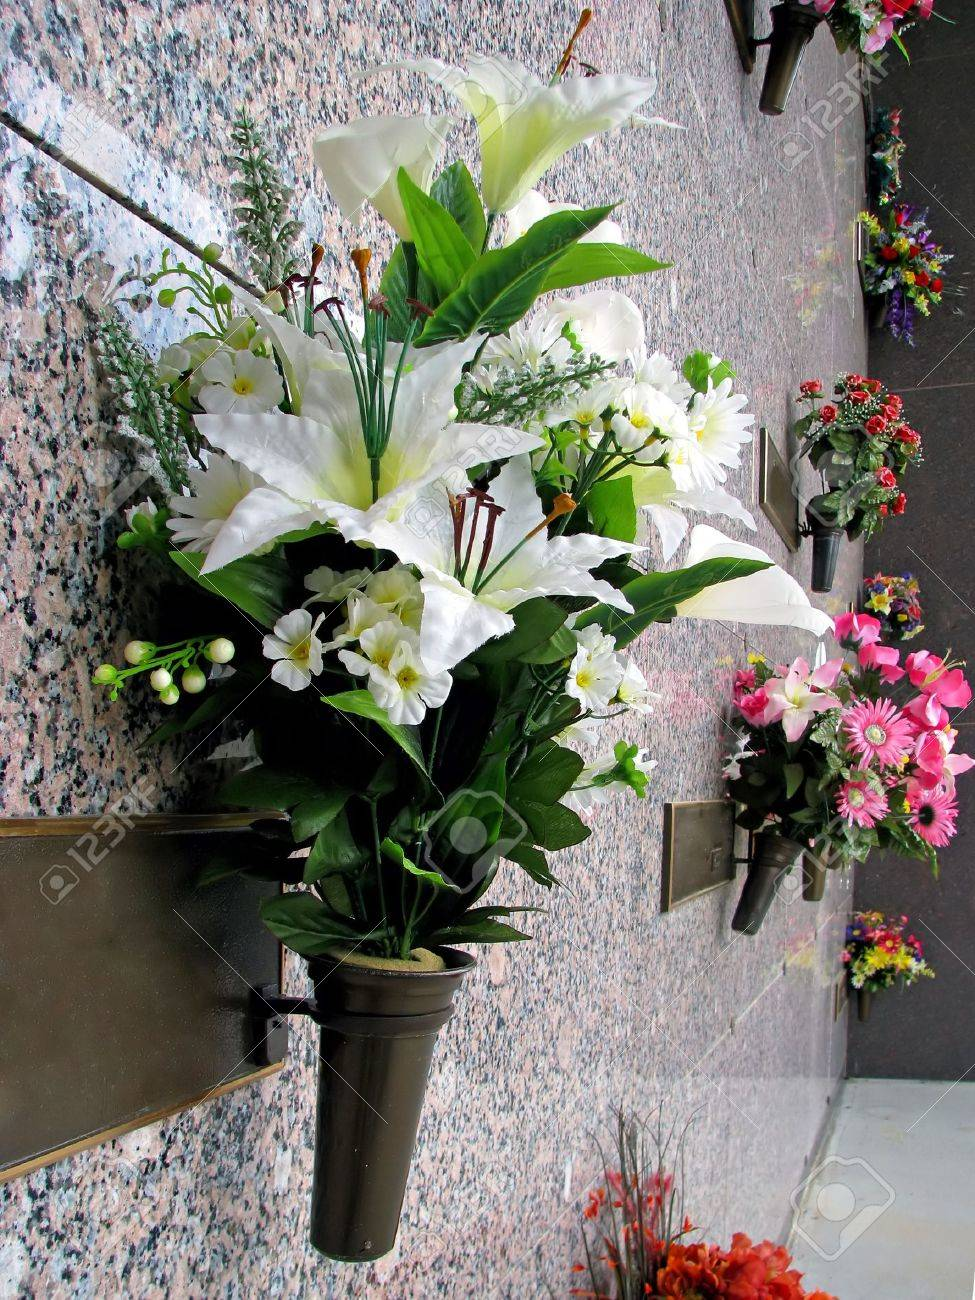 123RF.com & colorful silk flower vases in summer cemetery